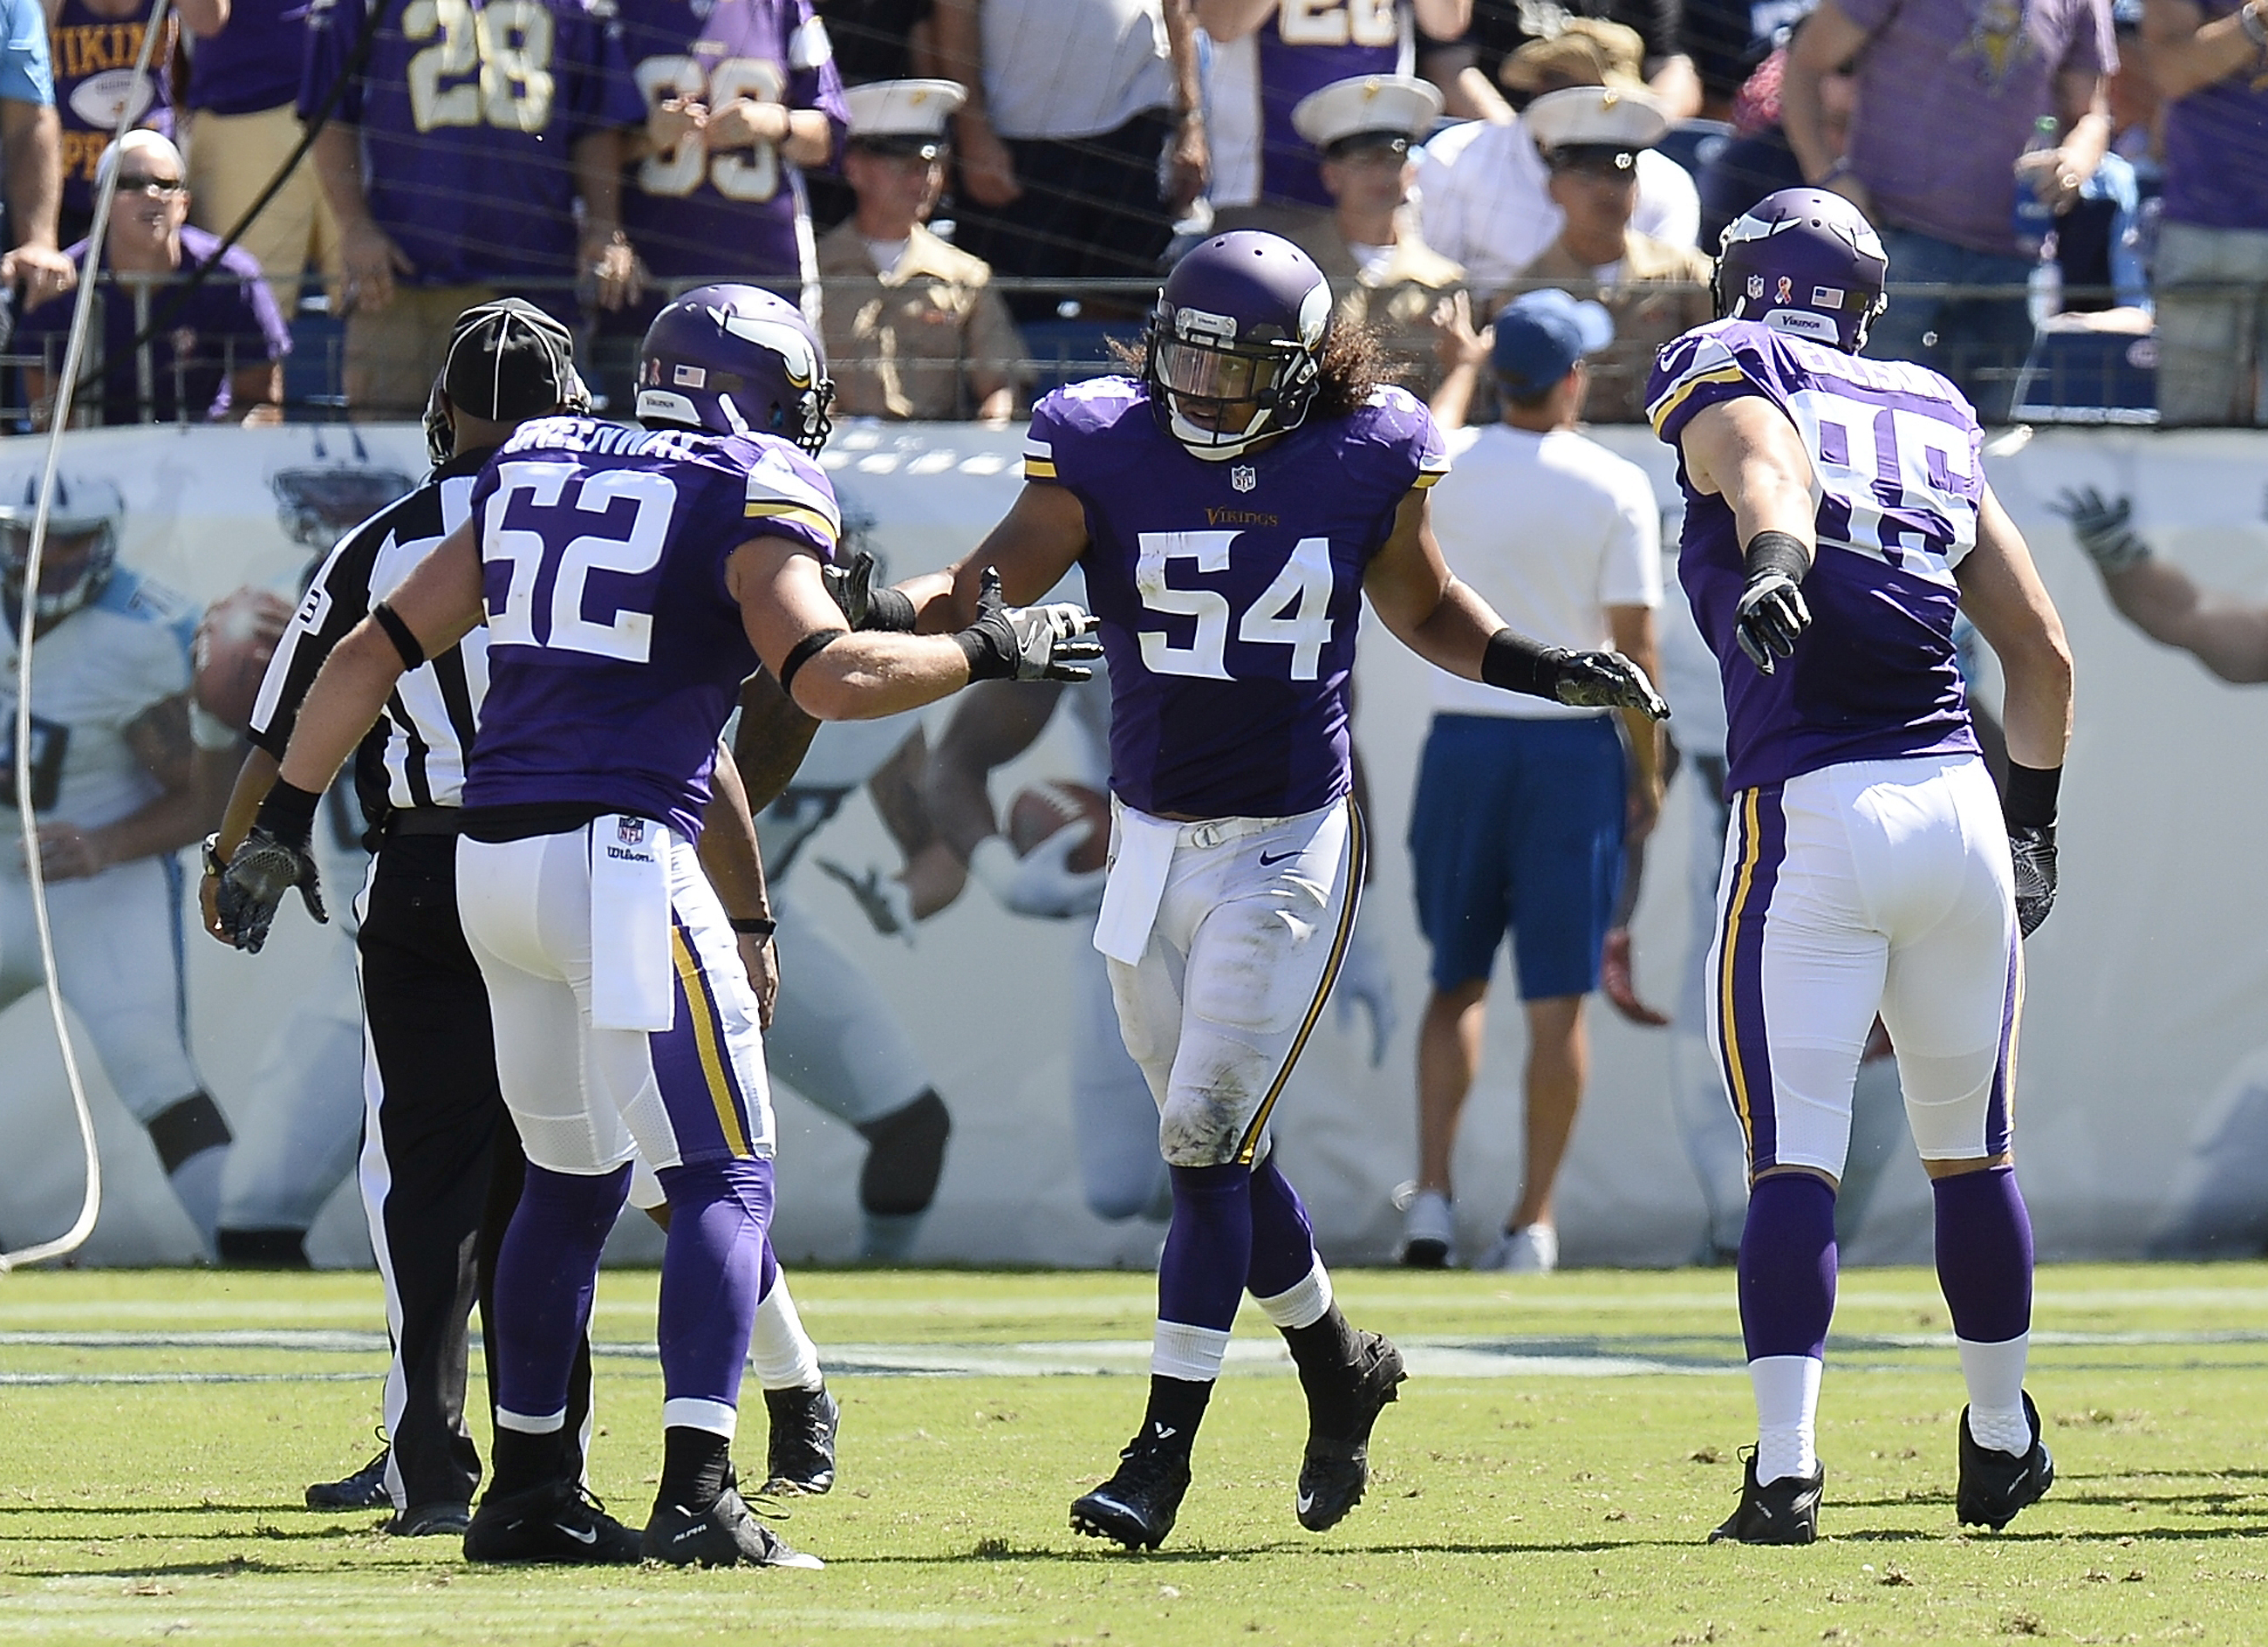 Minnesota Vikings linebacker Eric Kendricks (54) is congratulated by Chad Greenway (52) and Rhett Ellison (85) after Kendricks returned an intercepted pass 77 yards for a touchdown against the Tennessee Titans in the second half of an NFL football game Su